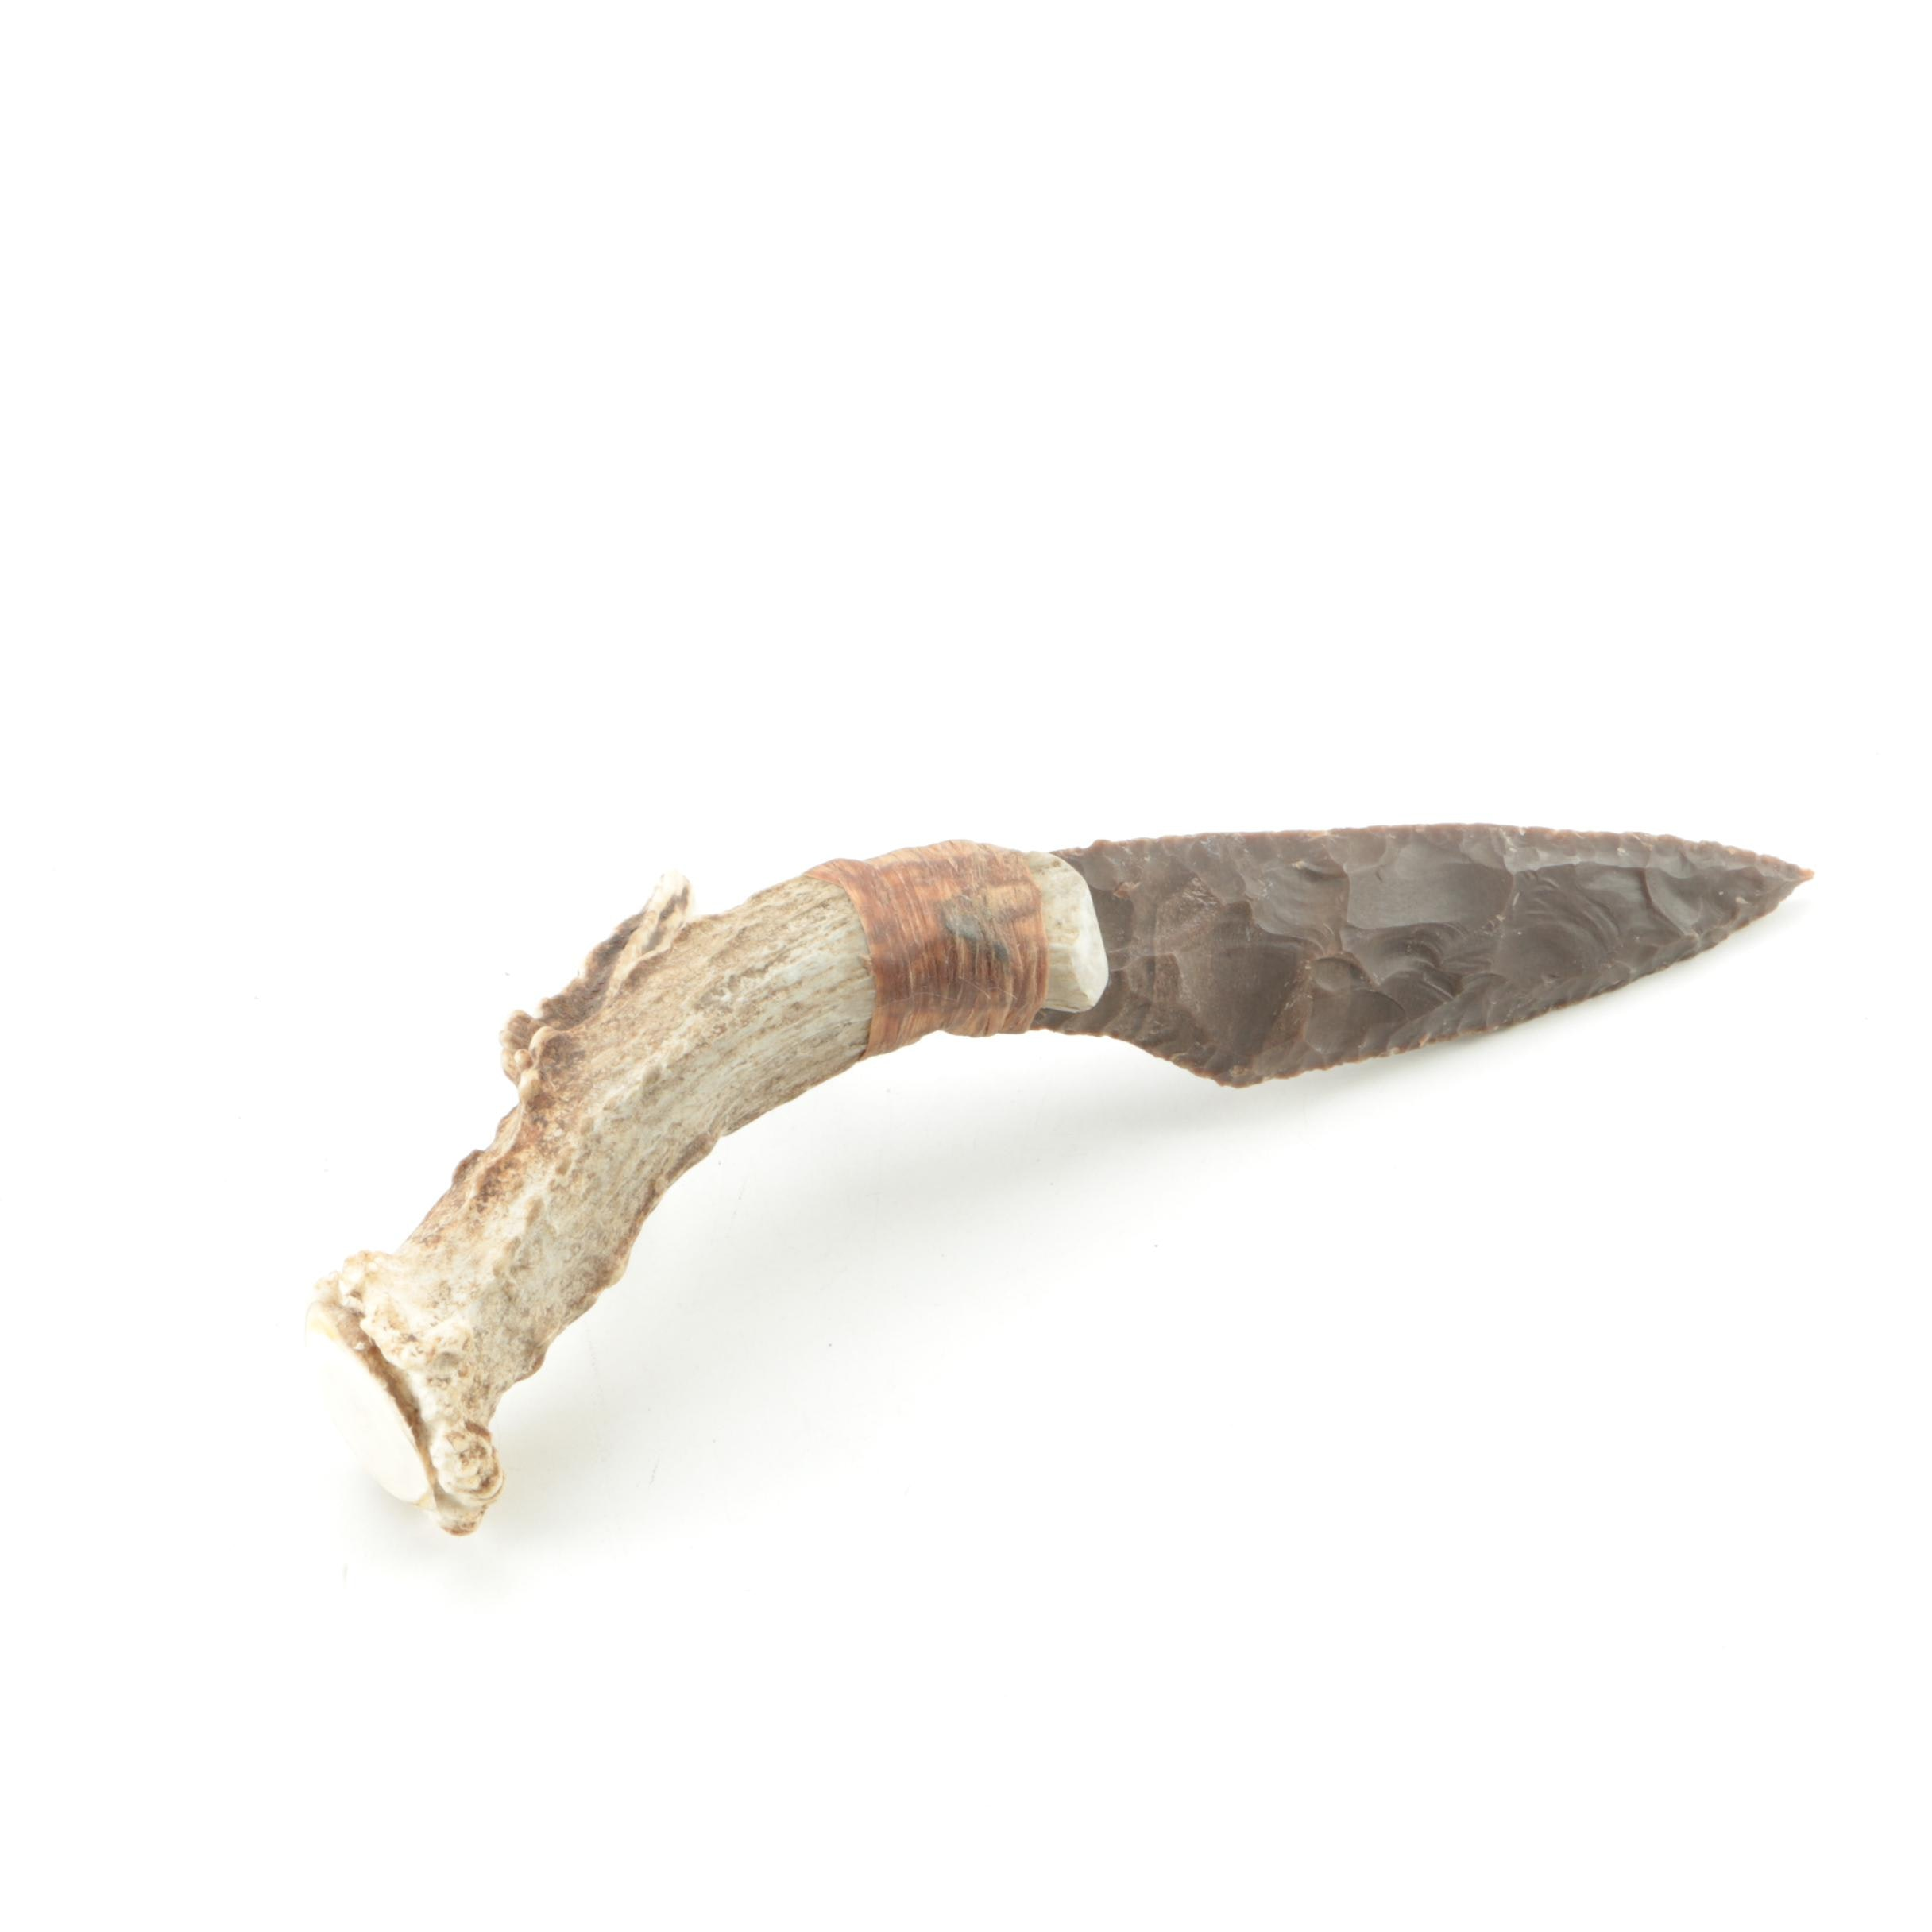 Antler and Chert Point Knife